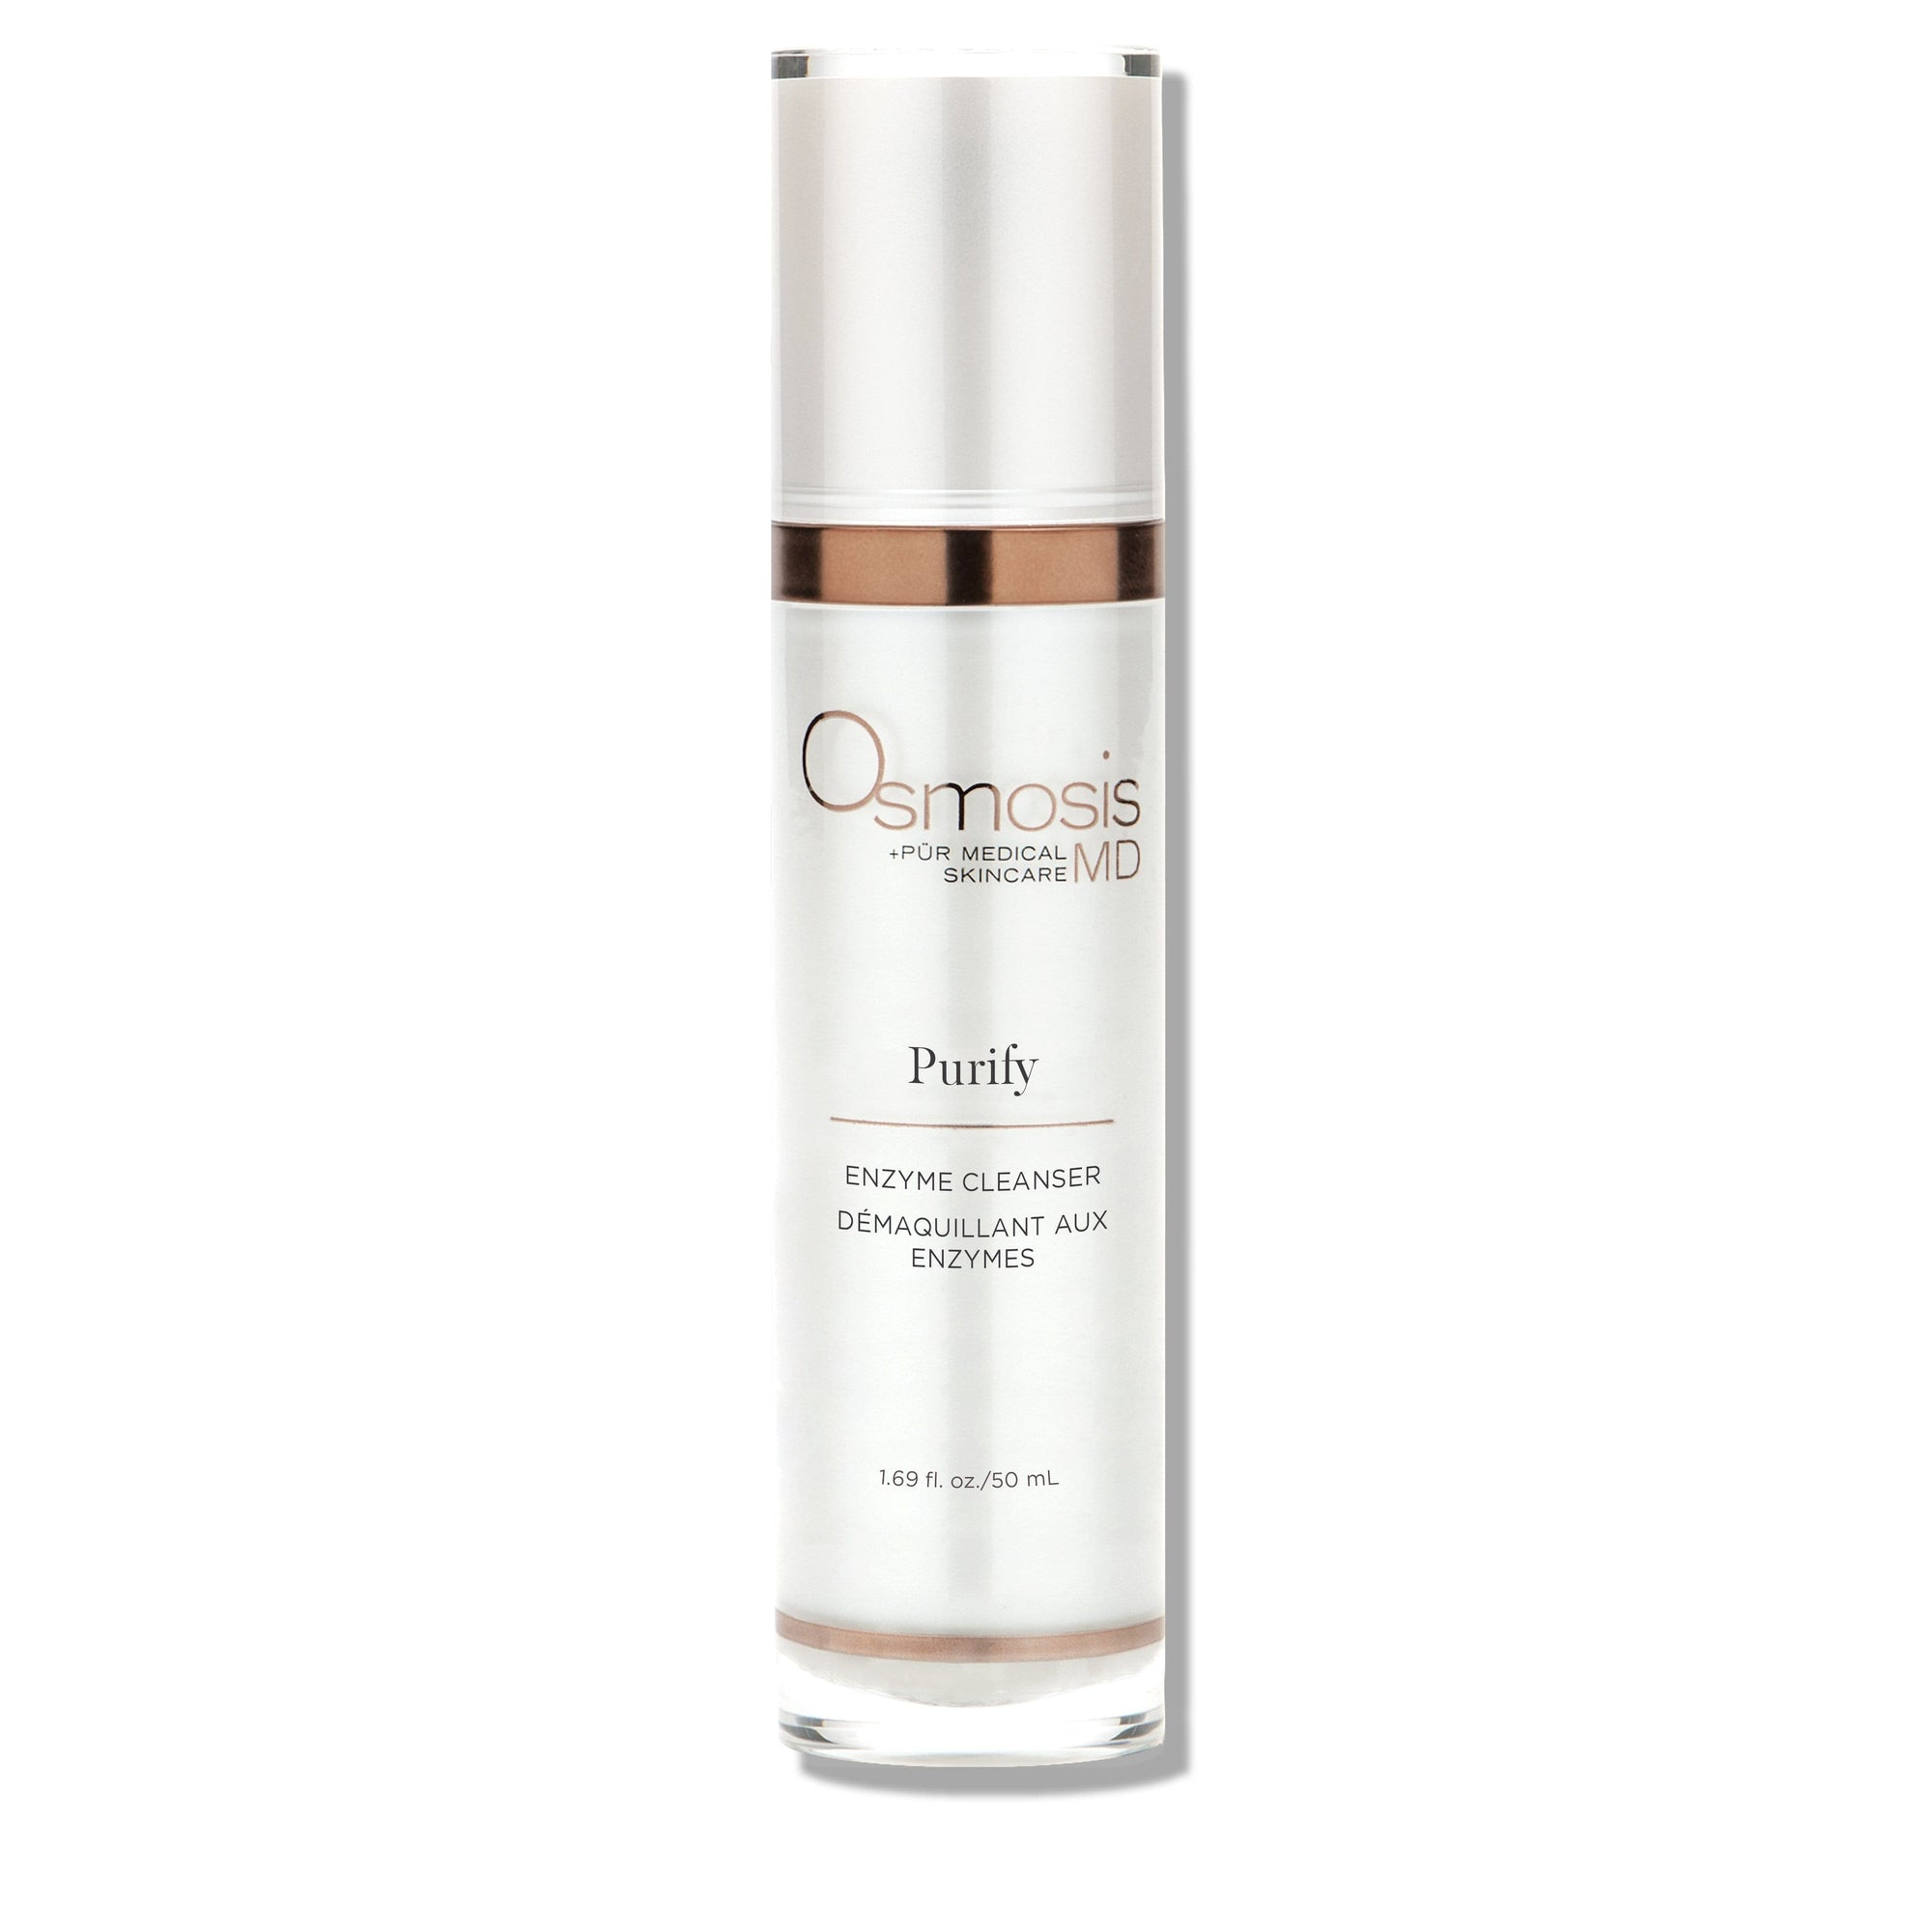 Osmosis MD Purify Enzyme Cleanser 1.69 fl oz